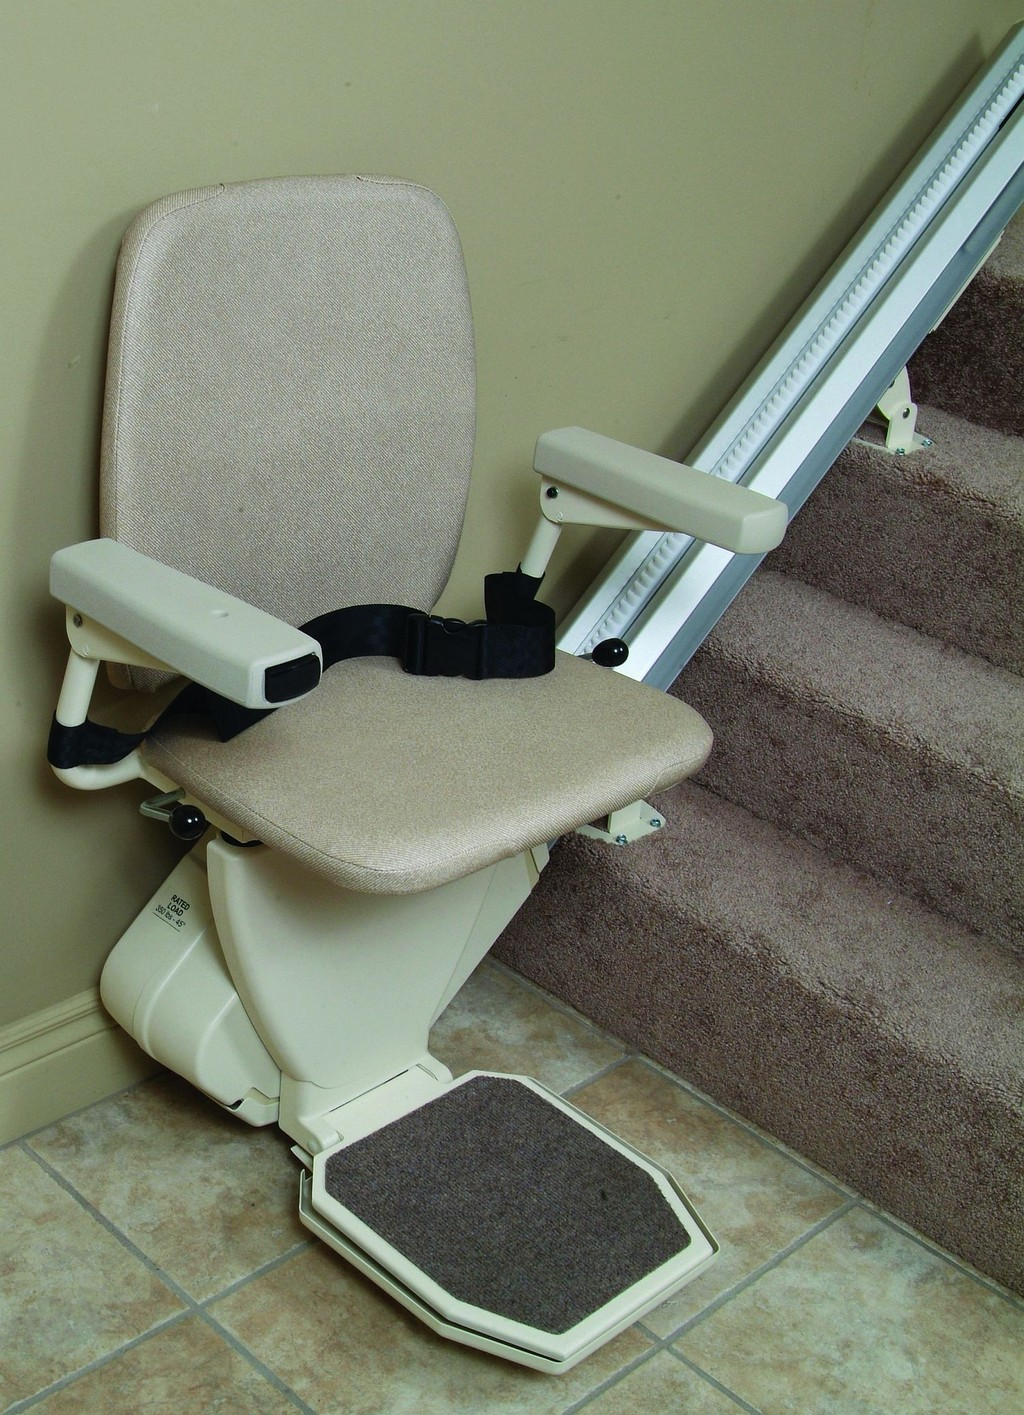 basement stairlift medical supplies electrical stair lift chair